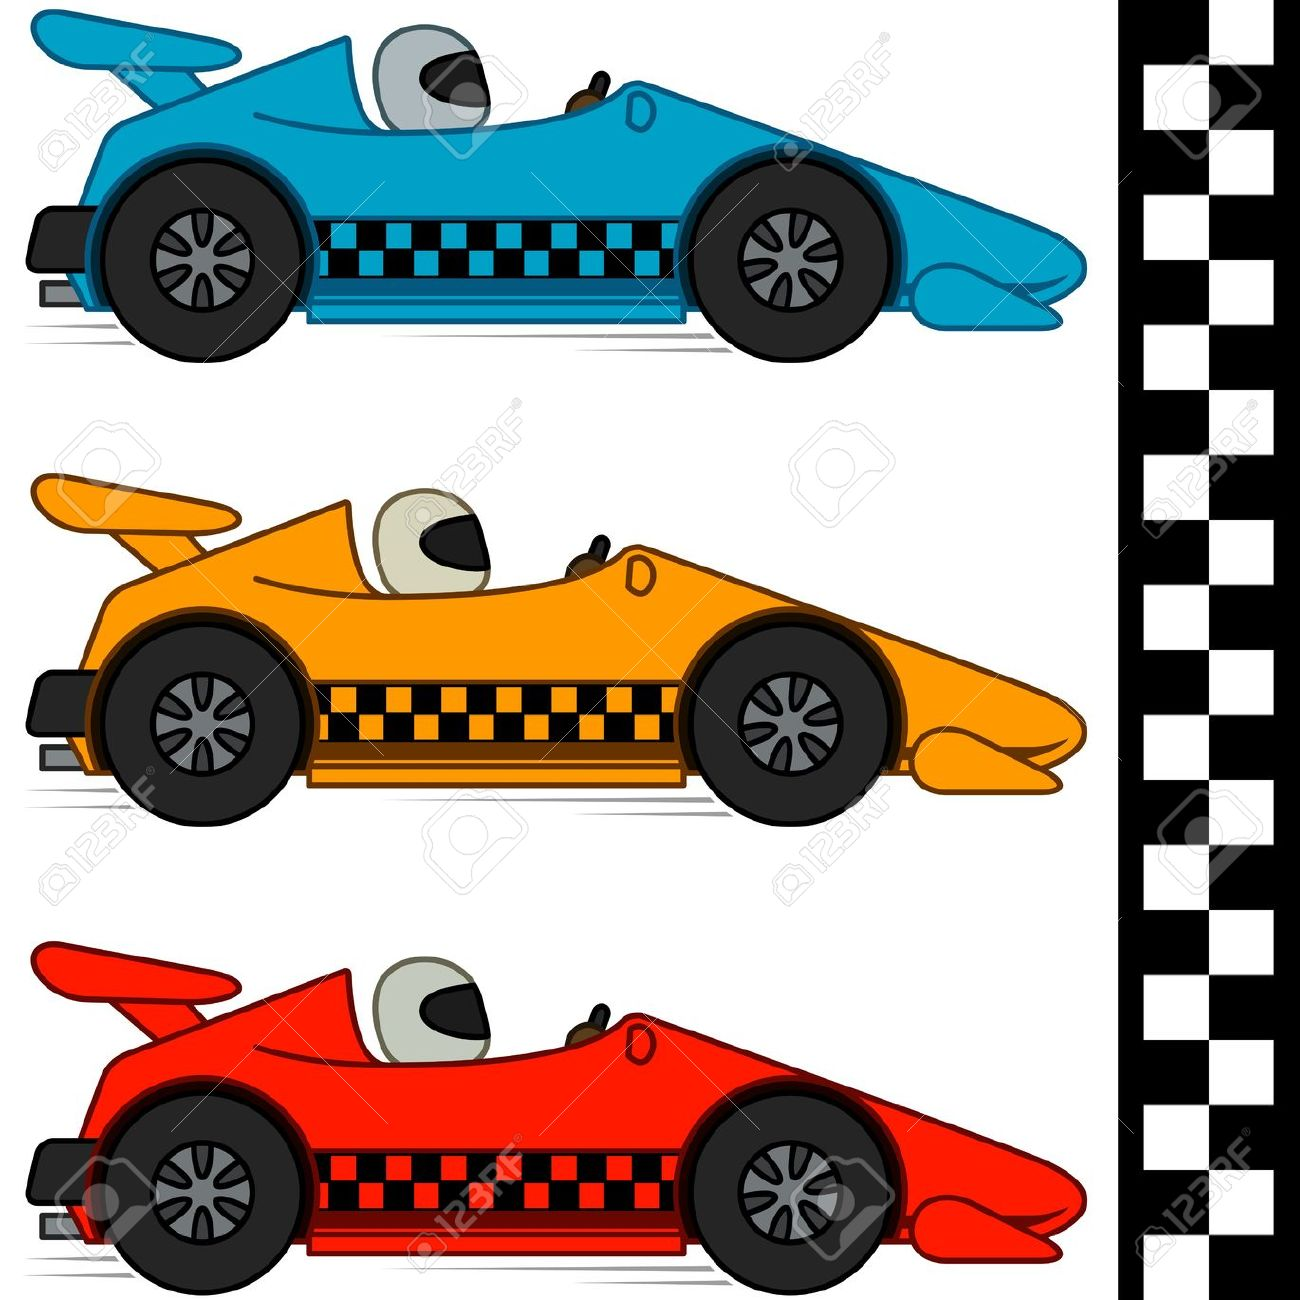 Free race car clipart clipartfest